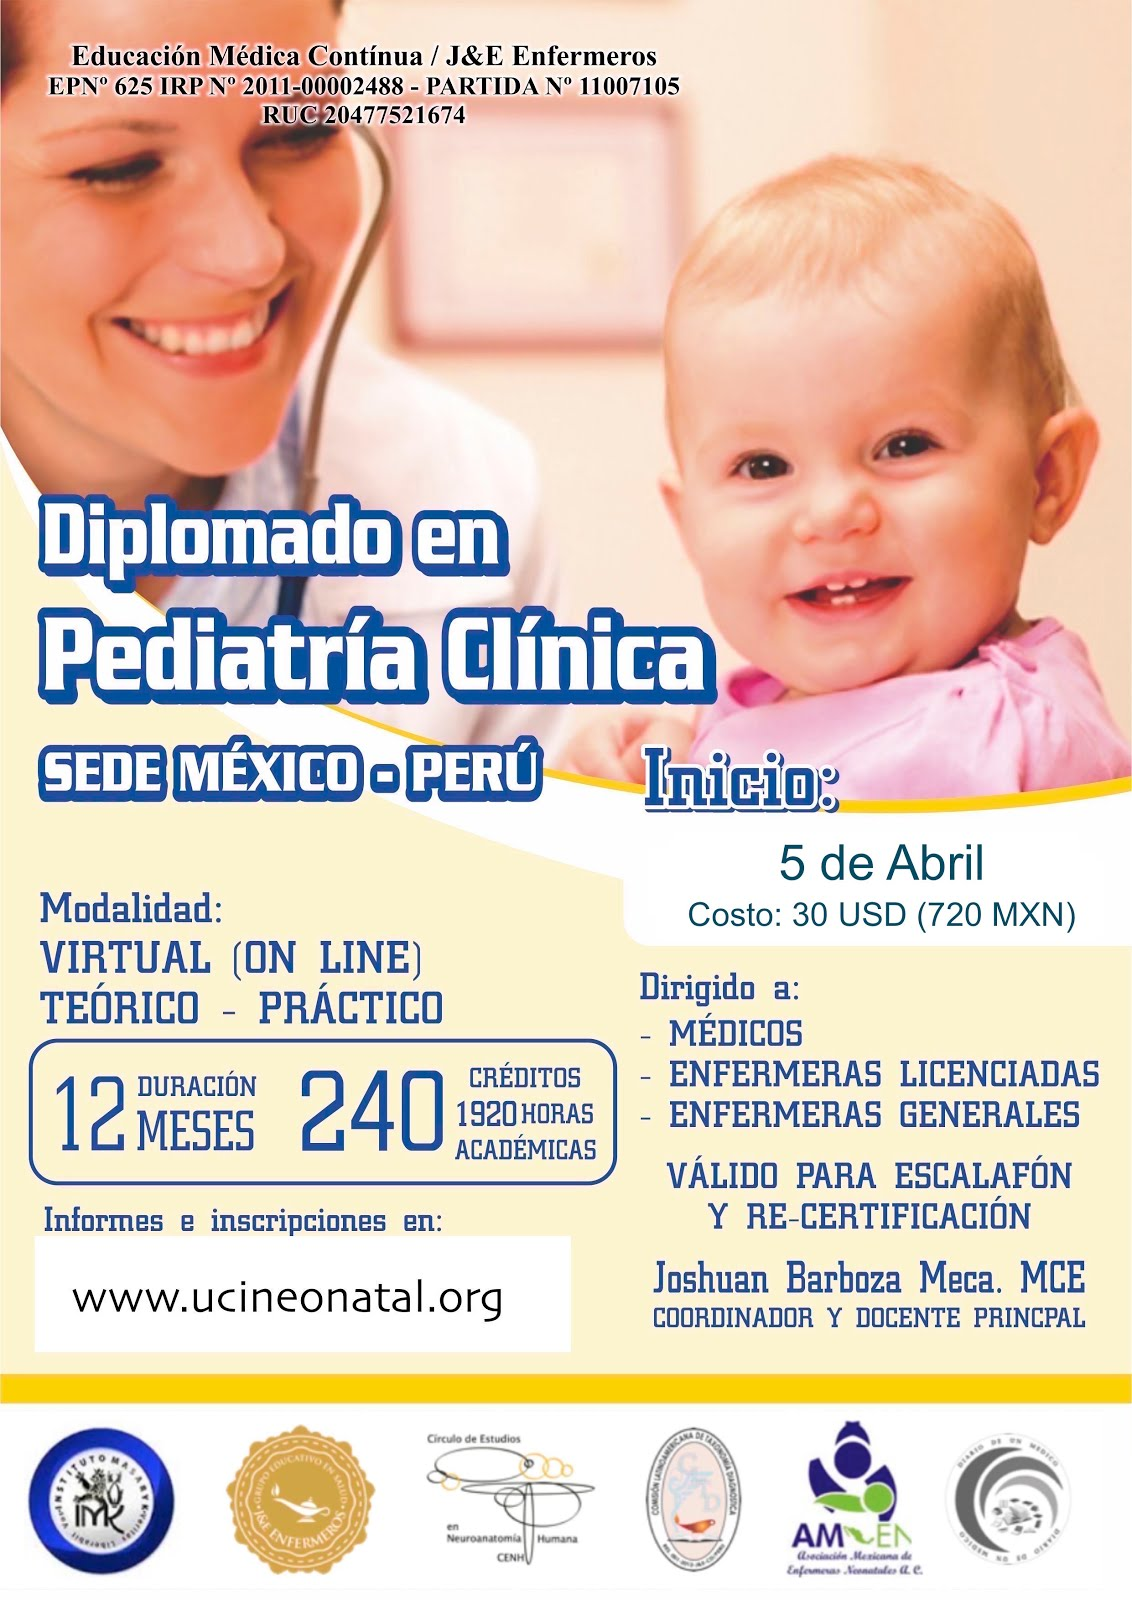 DIPLOMADO PEDIATRIA CLINICA ABRIL 2017